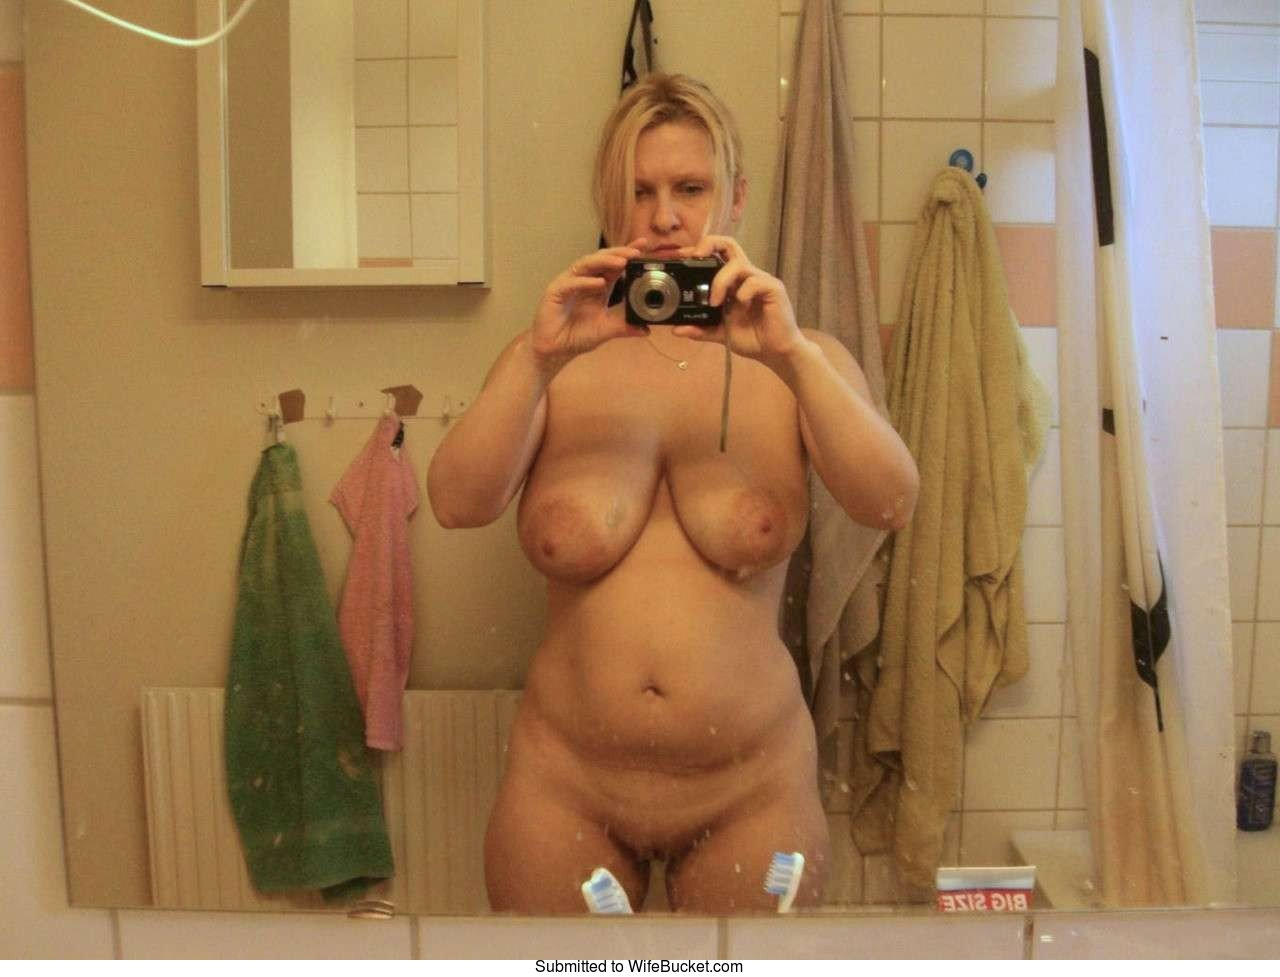 How to get over someone completely